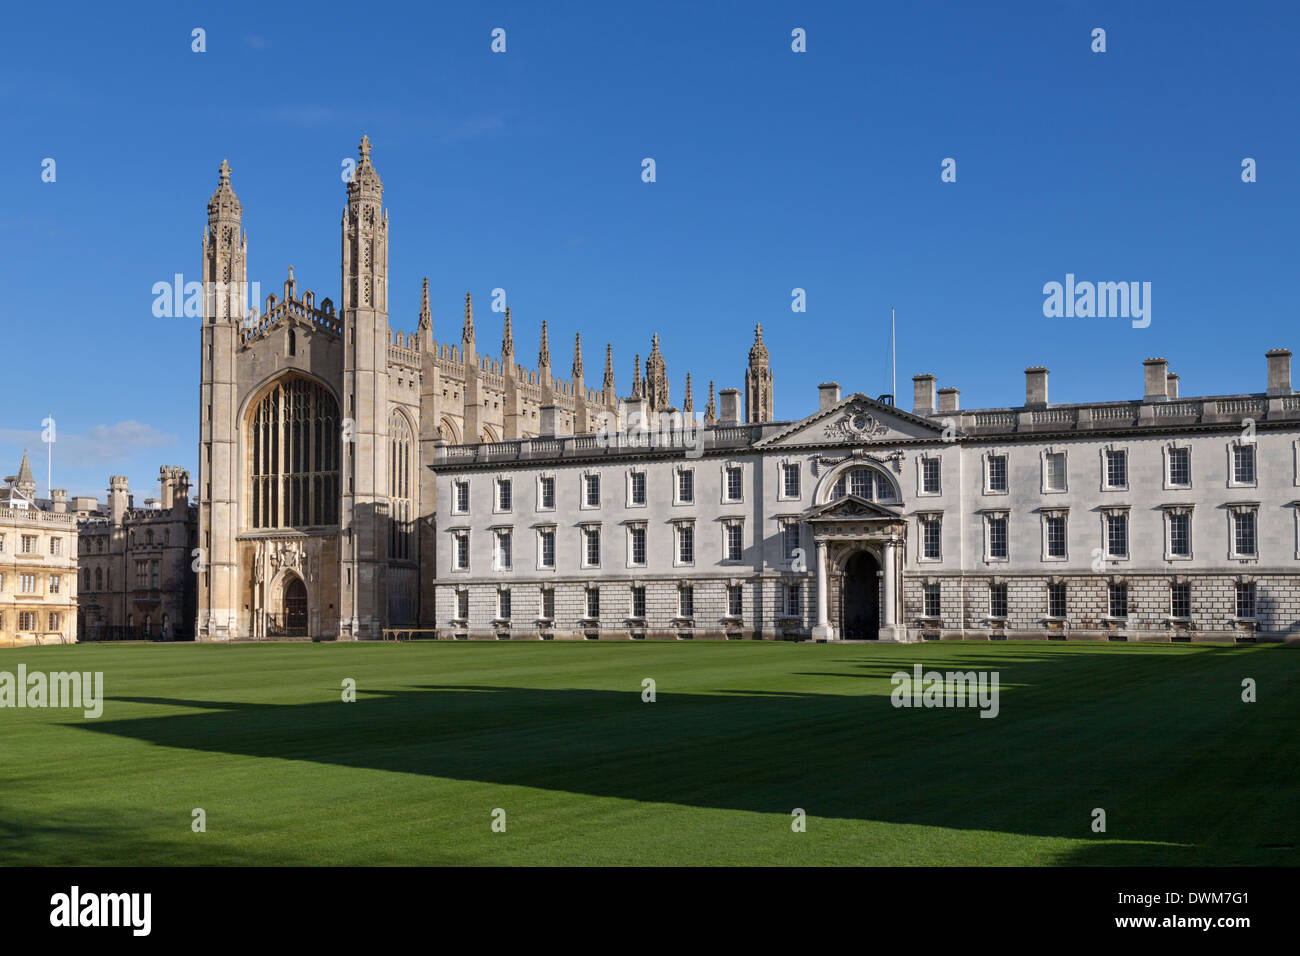 Kings College Cambridge back lawn Chapel and Gibbs building on a sunny day - Stock Image